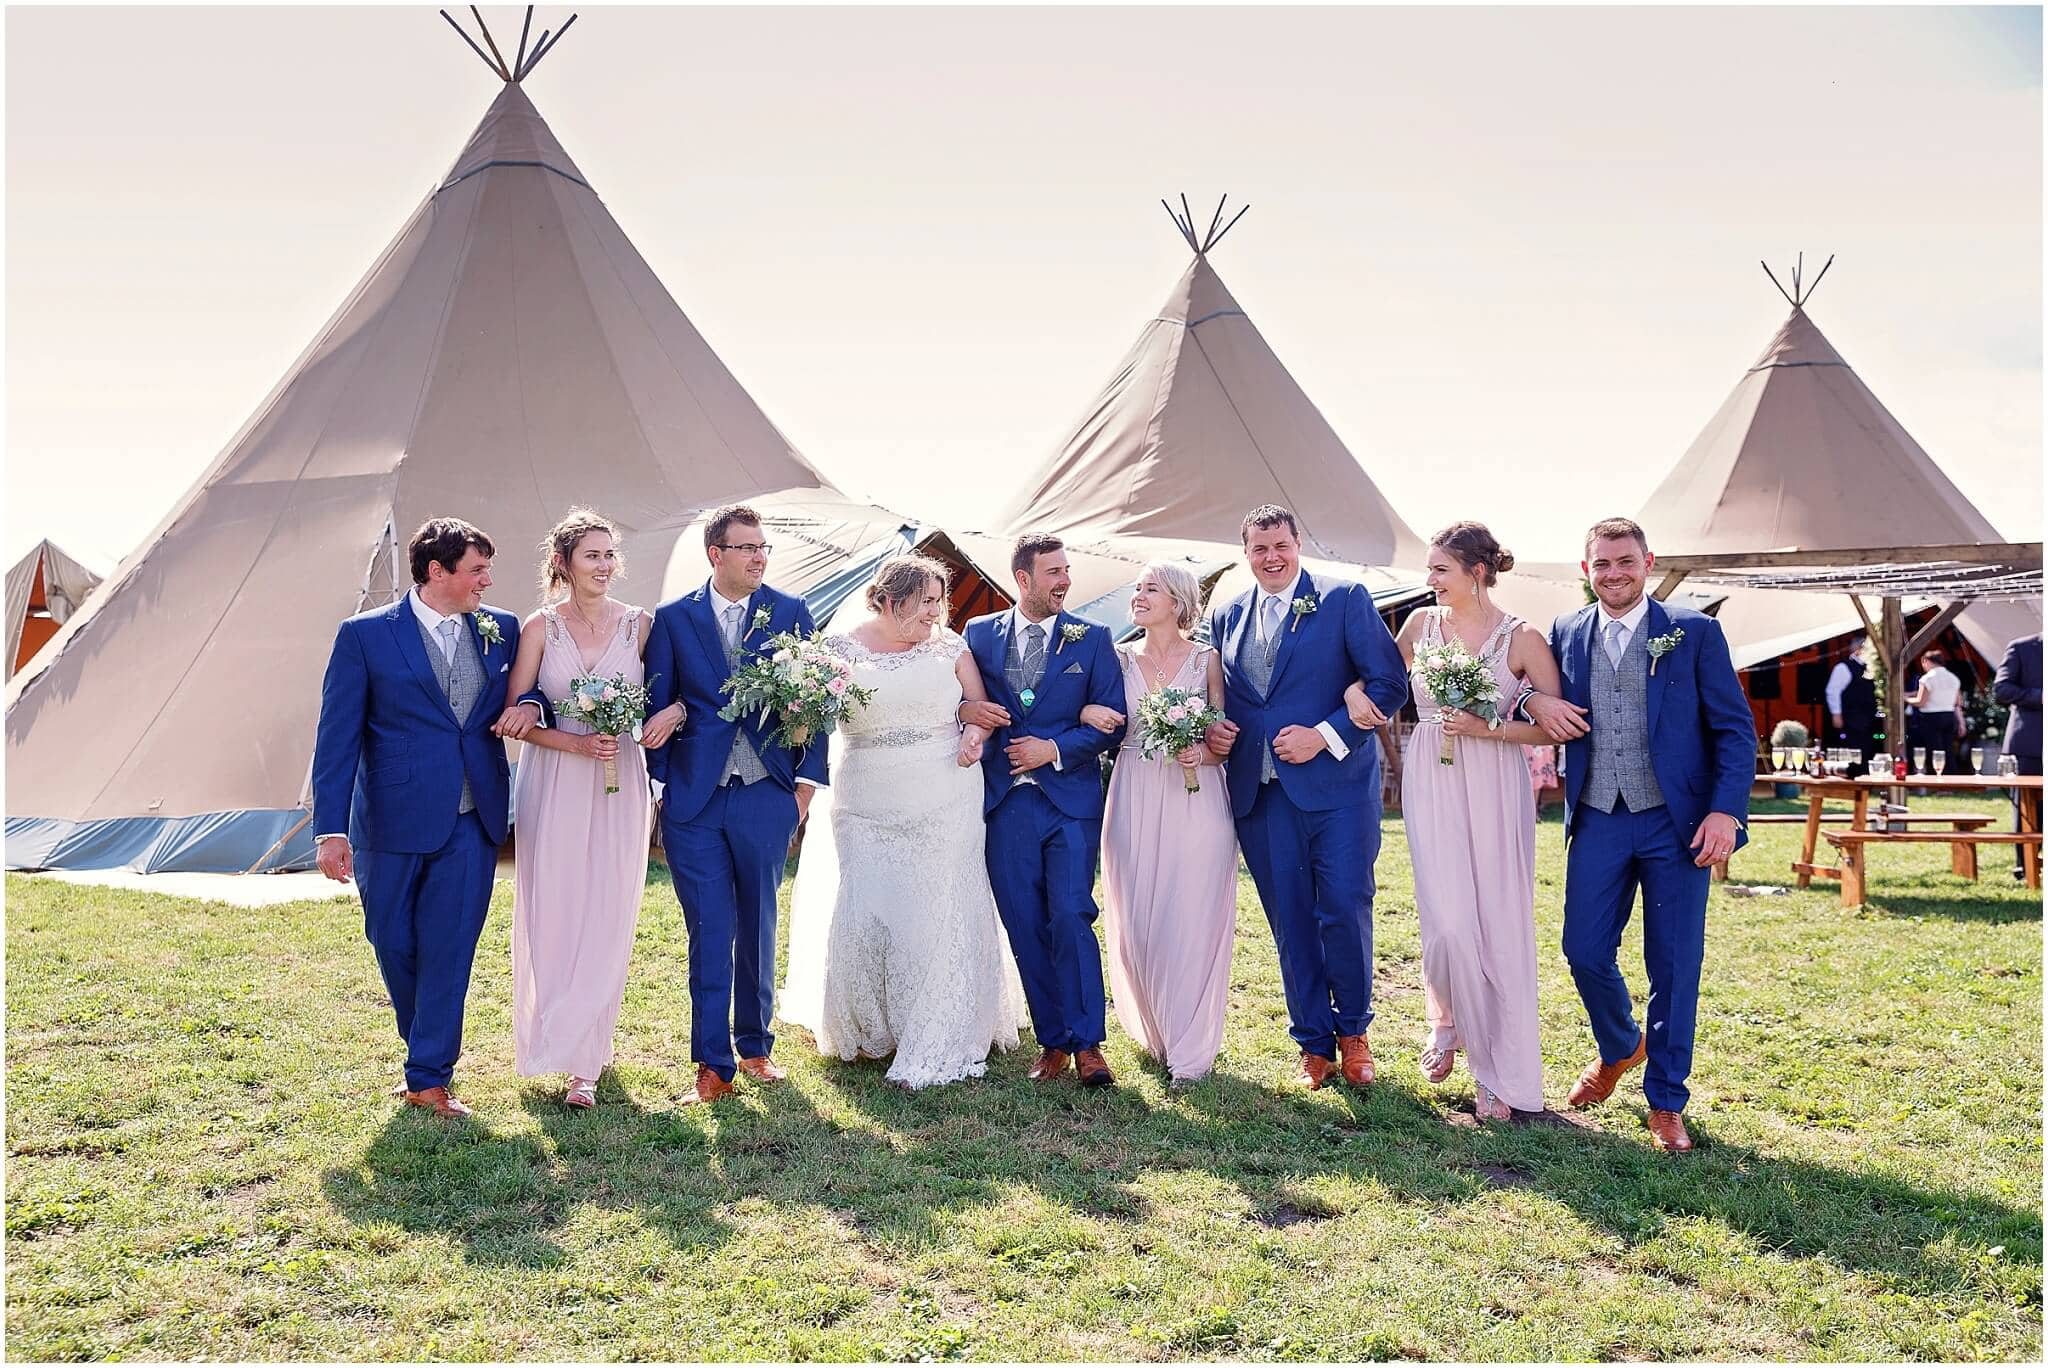 Events under canvas tipi wedding